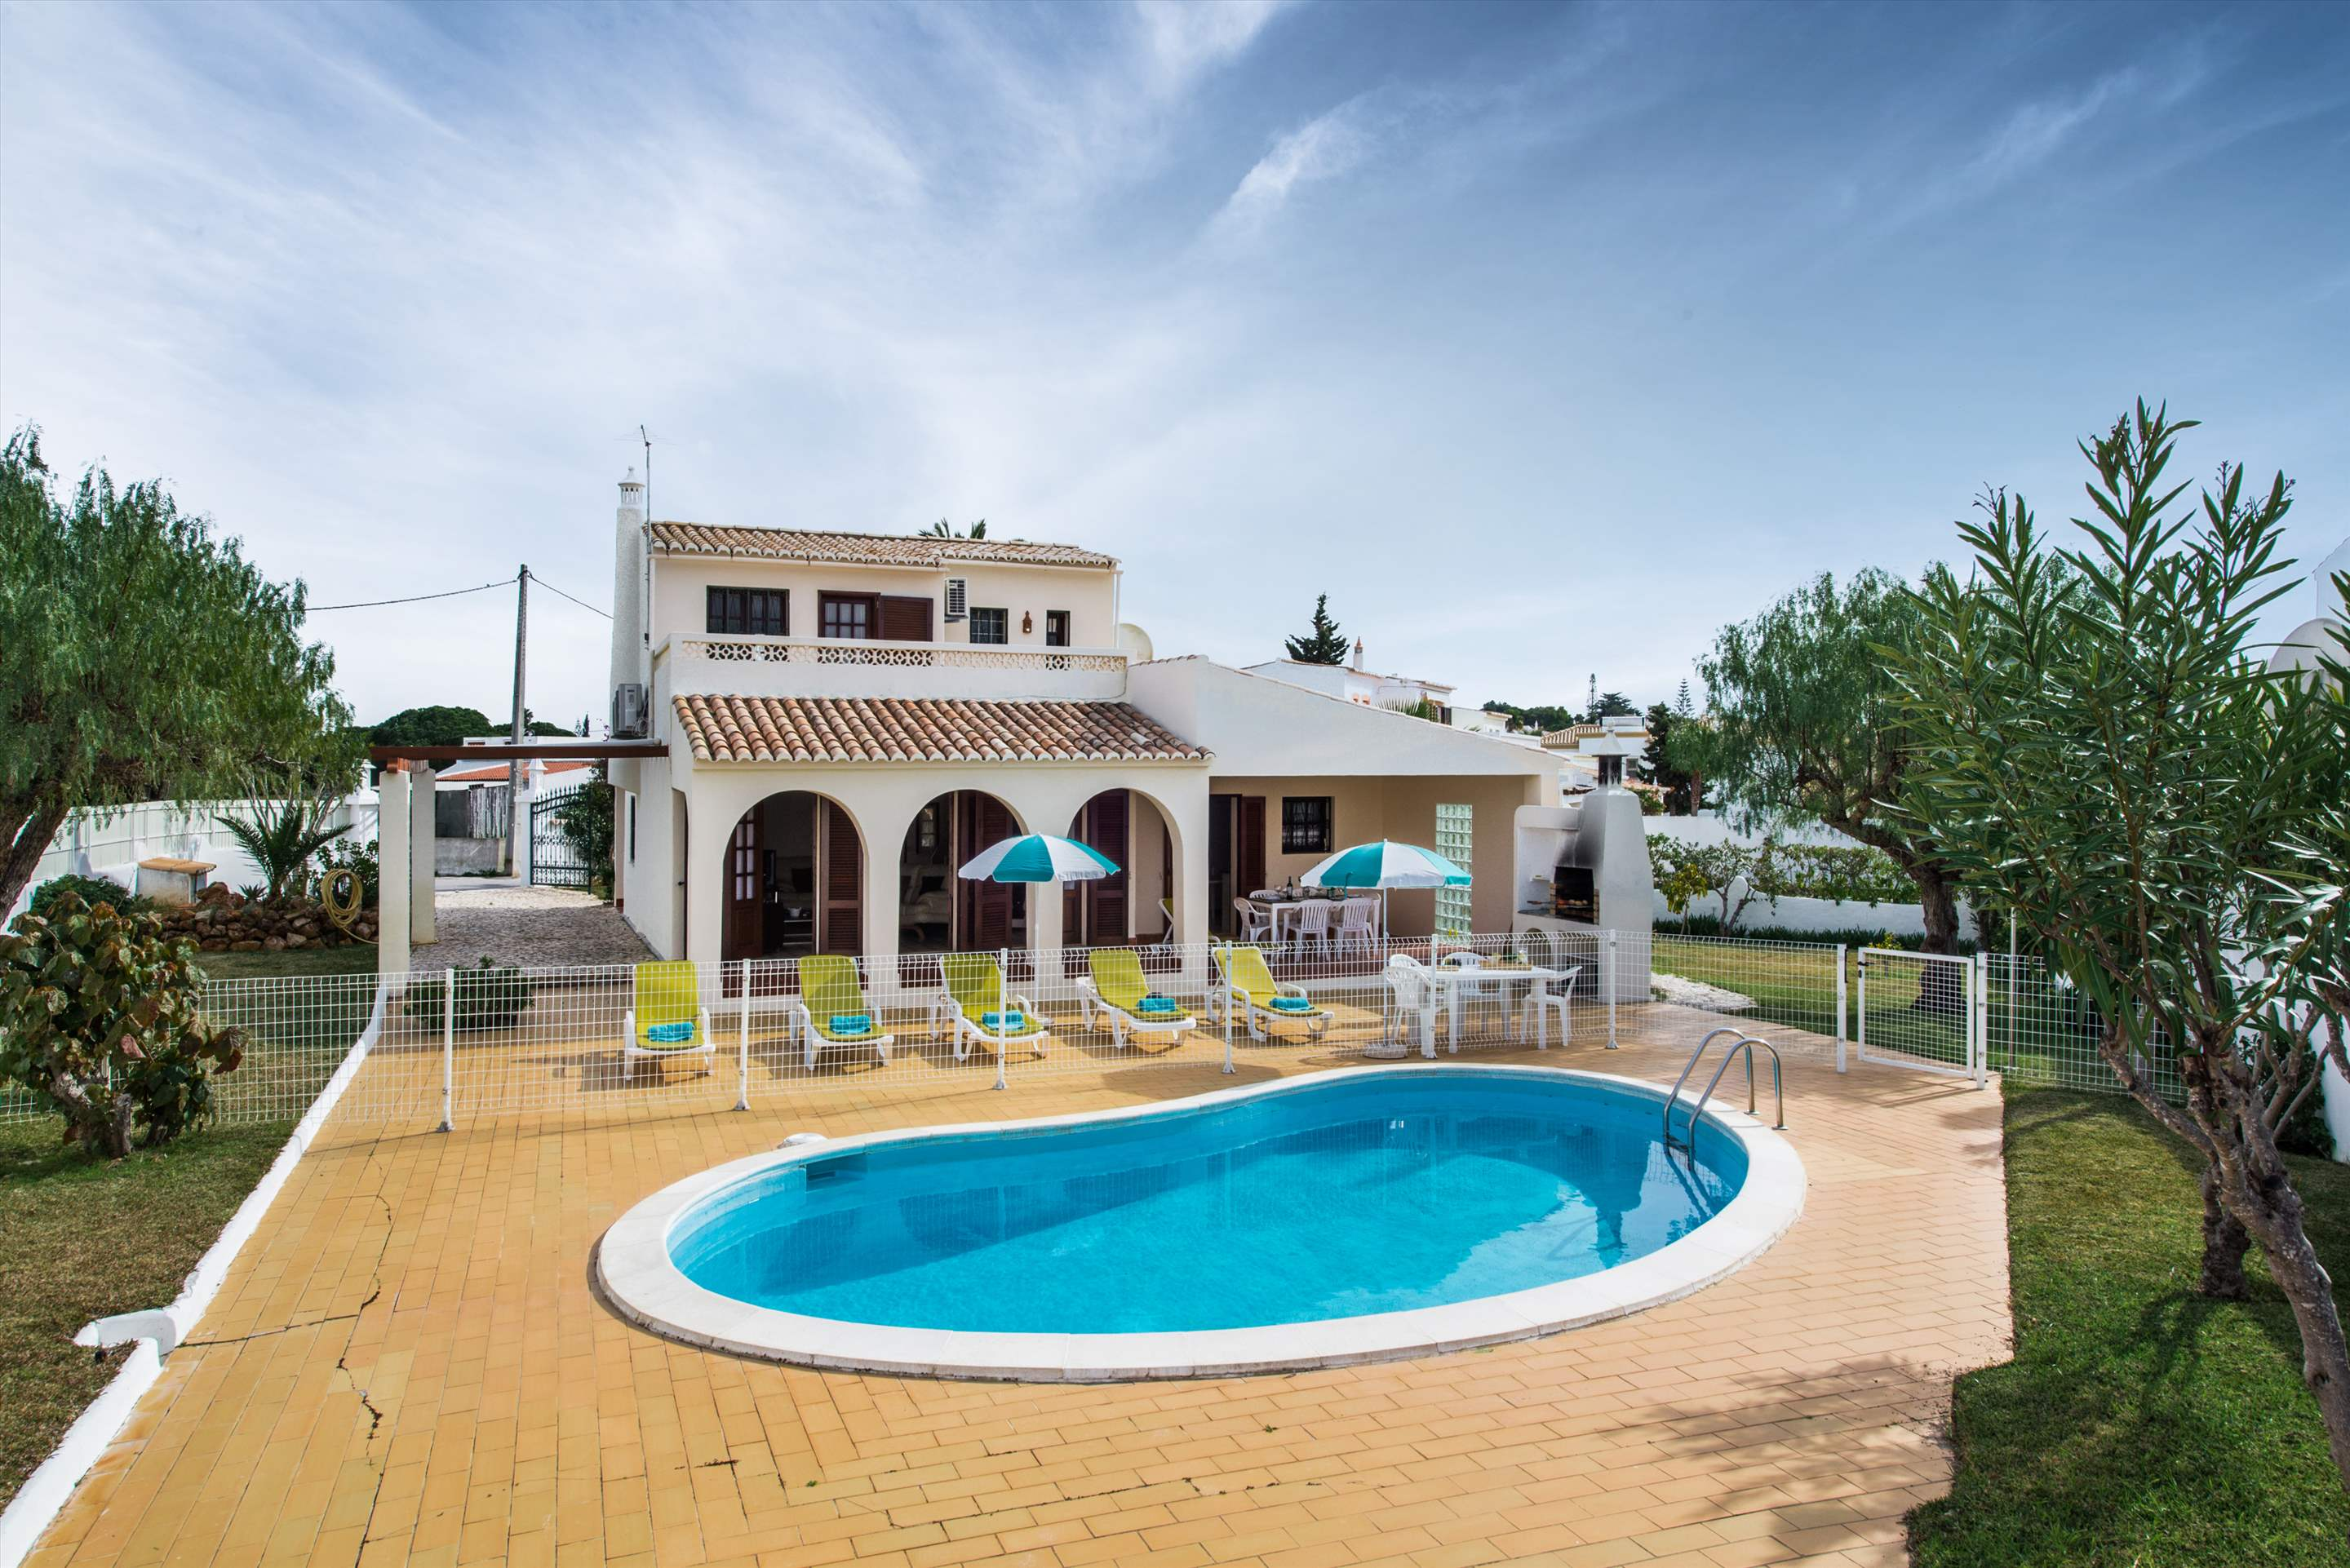 Casa Isabel, 5-6 persons rate, 3 bedroom villa in Gale, Vale da Parra and Guia, Algarve